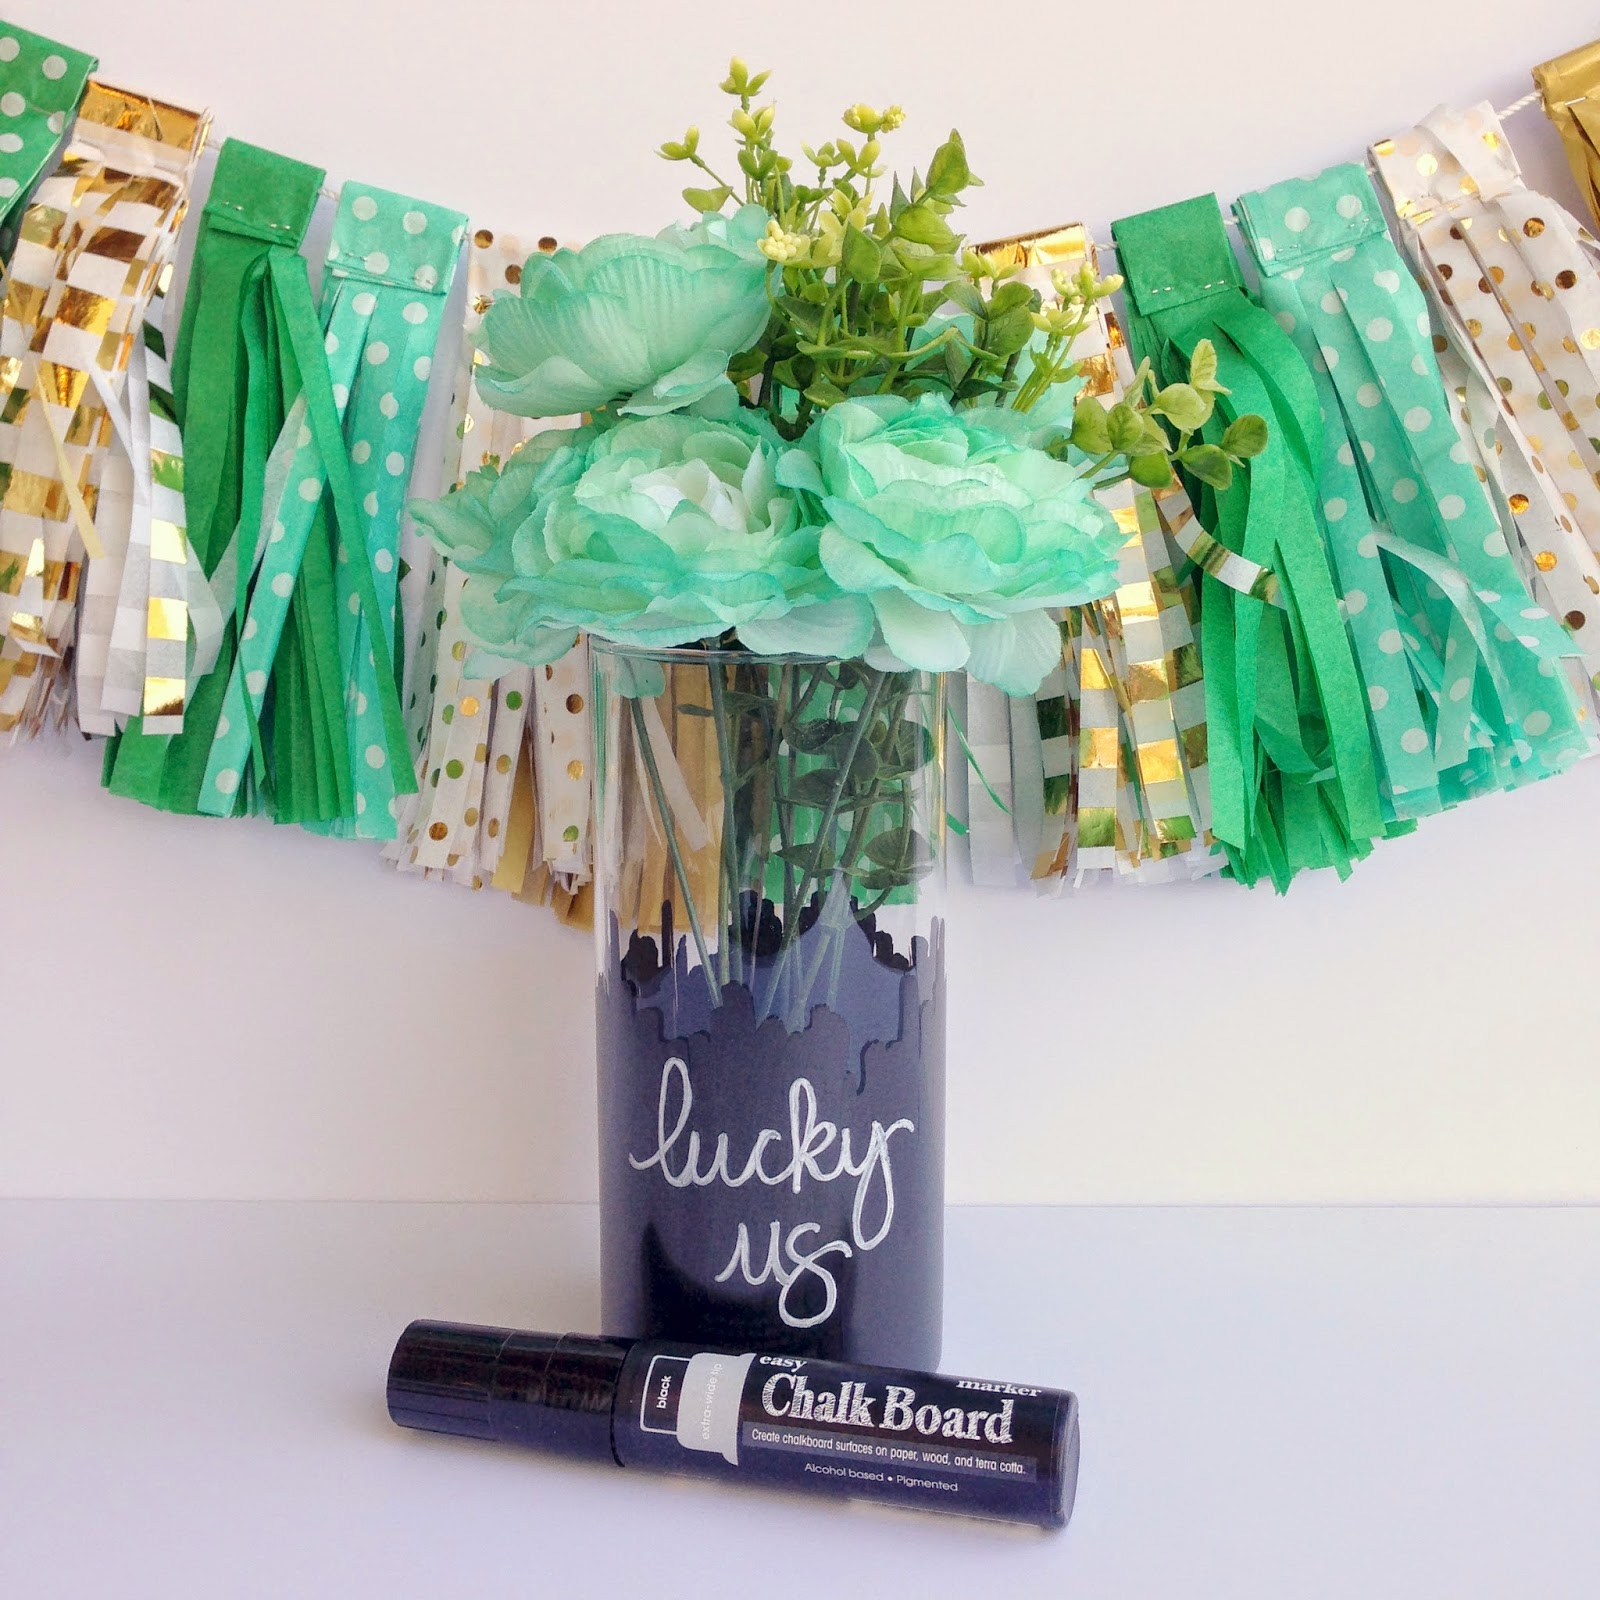 "SRM Stickers Blog - Chalkboard ""Lucky Us"" Vase by Tessa - #chalkboard #chalkmarkers #easy #blackboard #homedecor #stpatricksday #DIY"